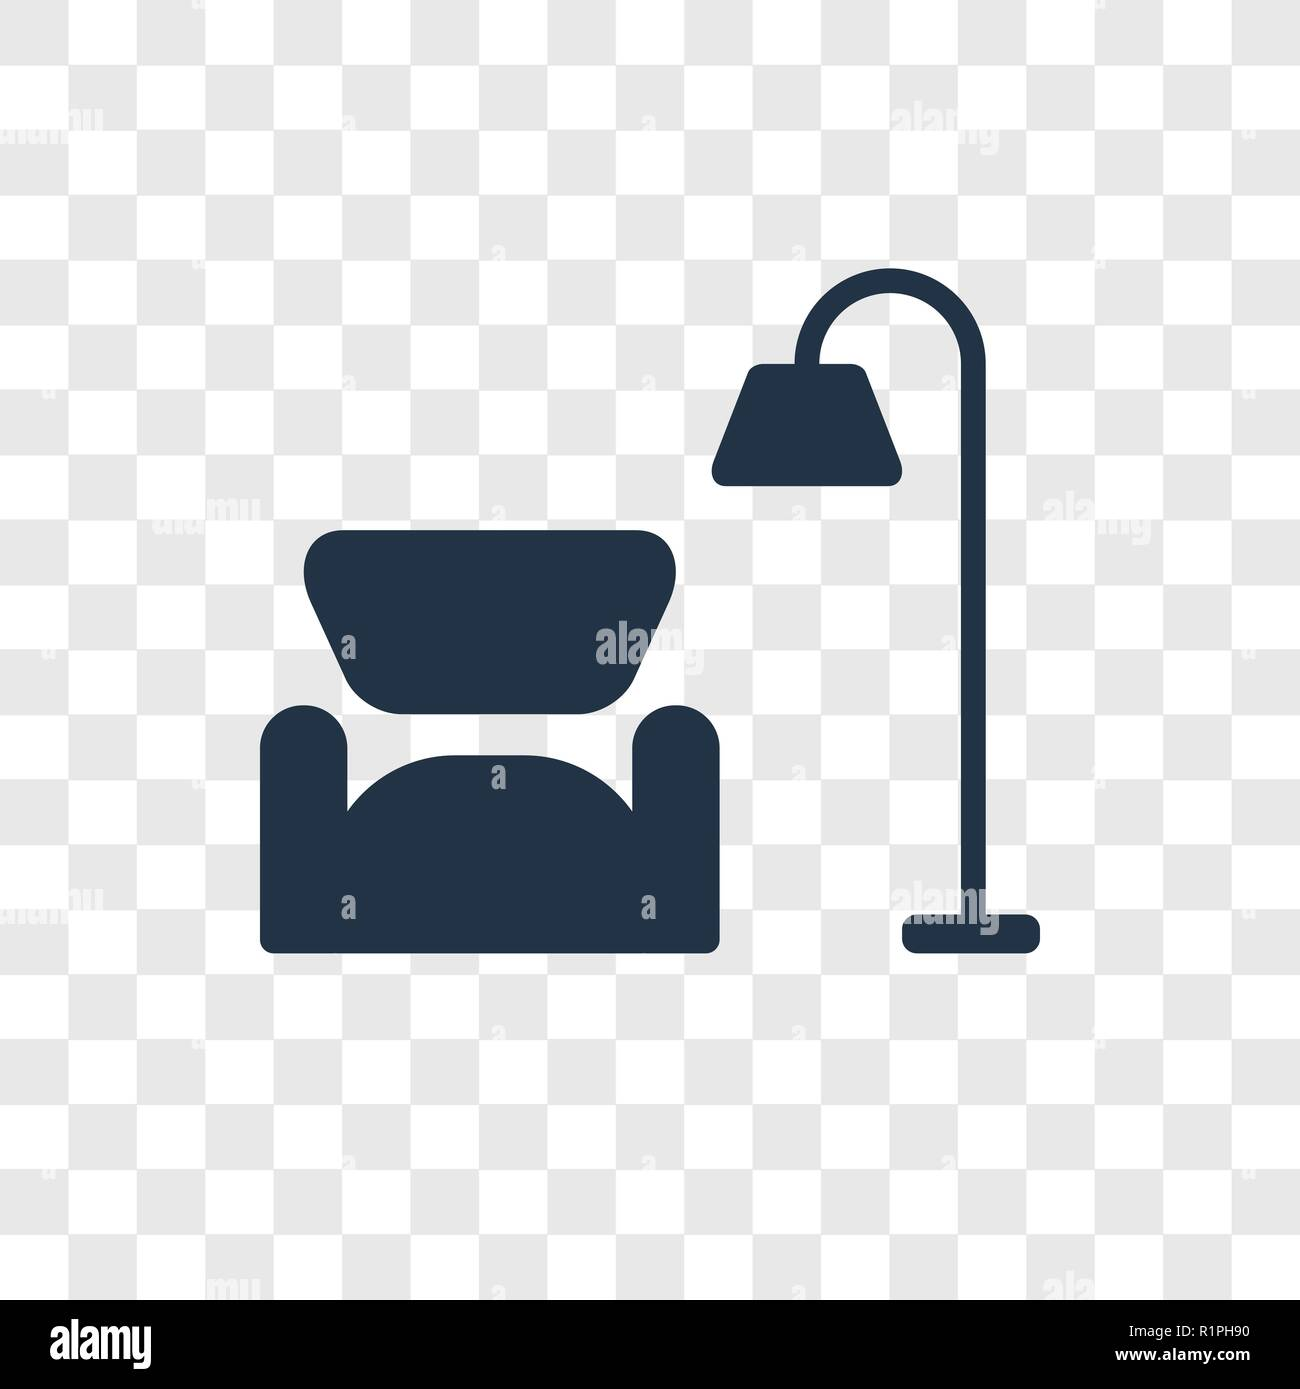 Living Room Vector Icon Isolated On Transparent Background